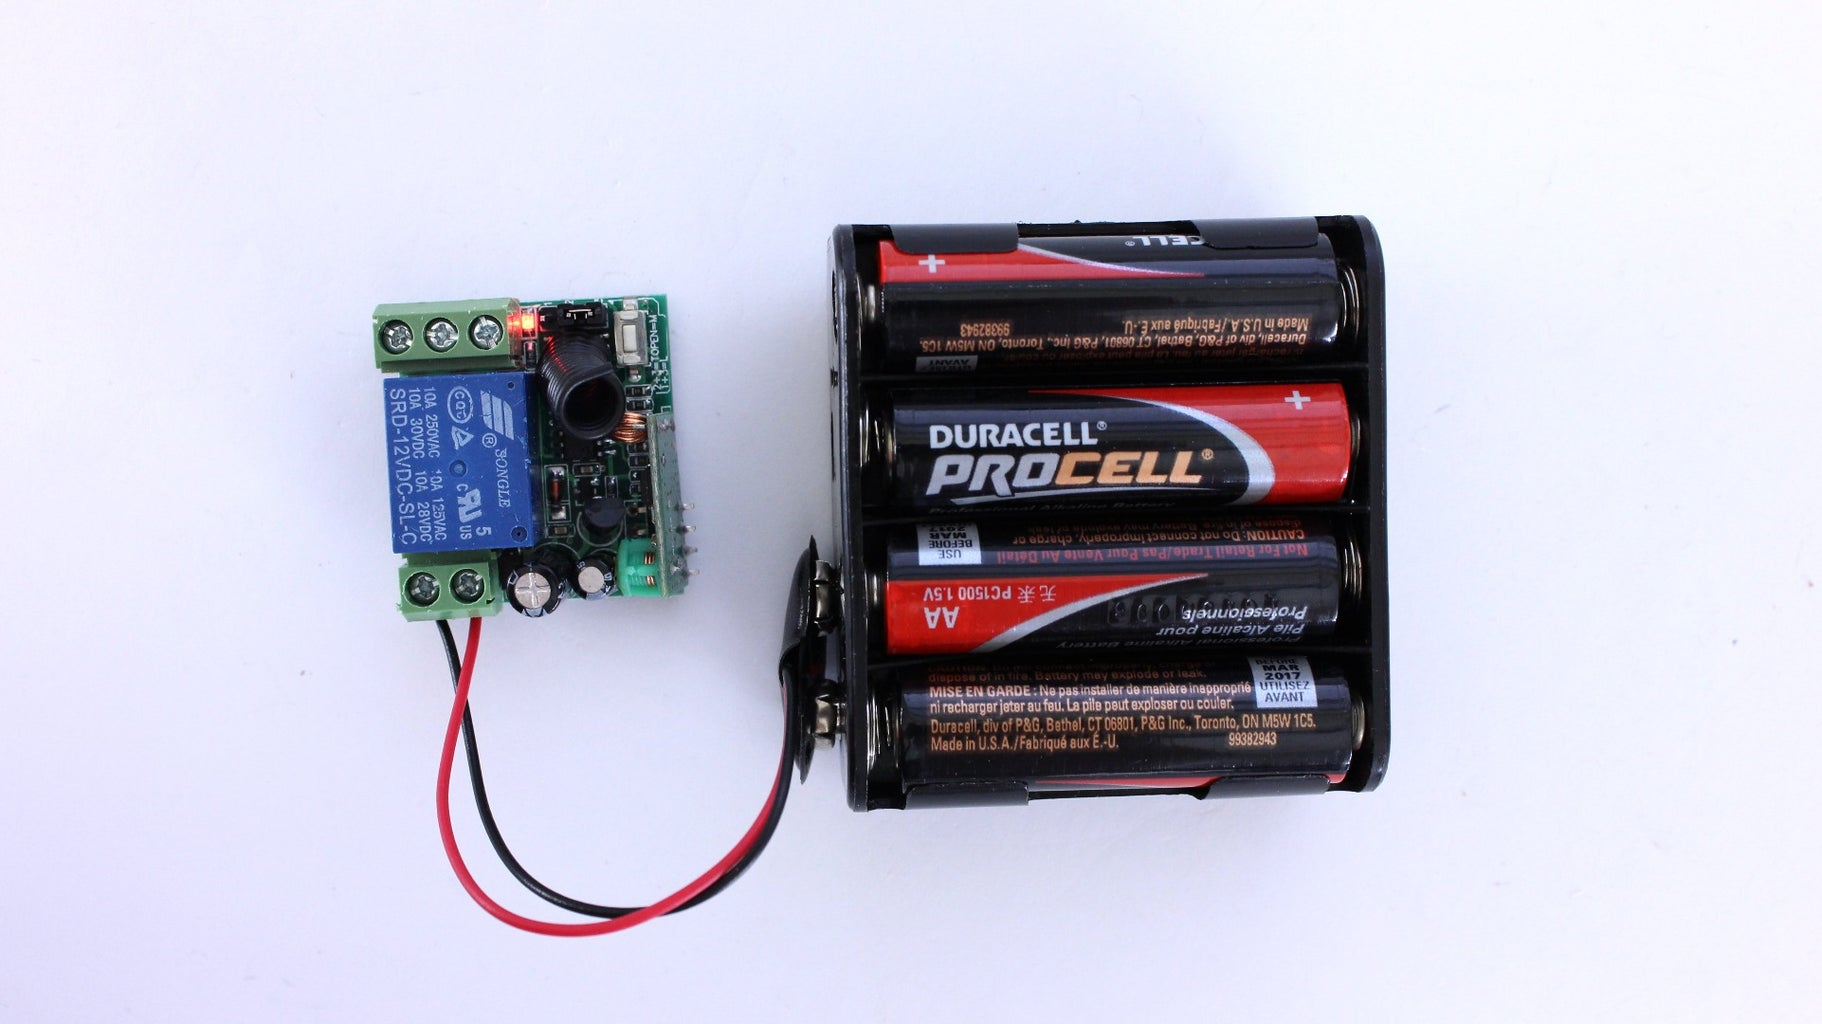 Connect the Battery Pack to the Relay